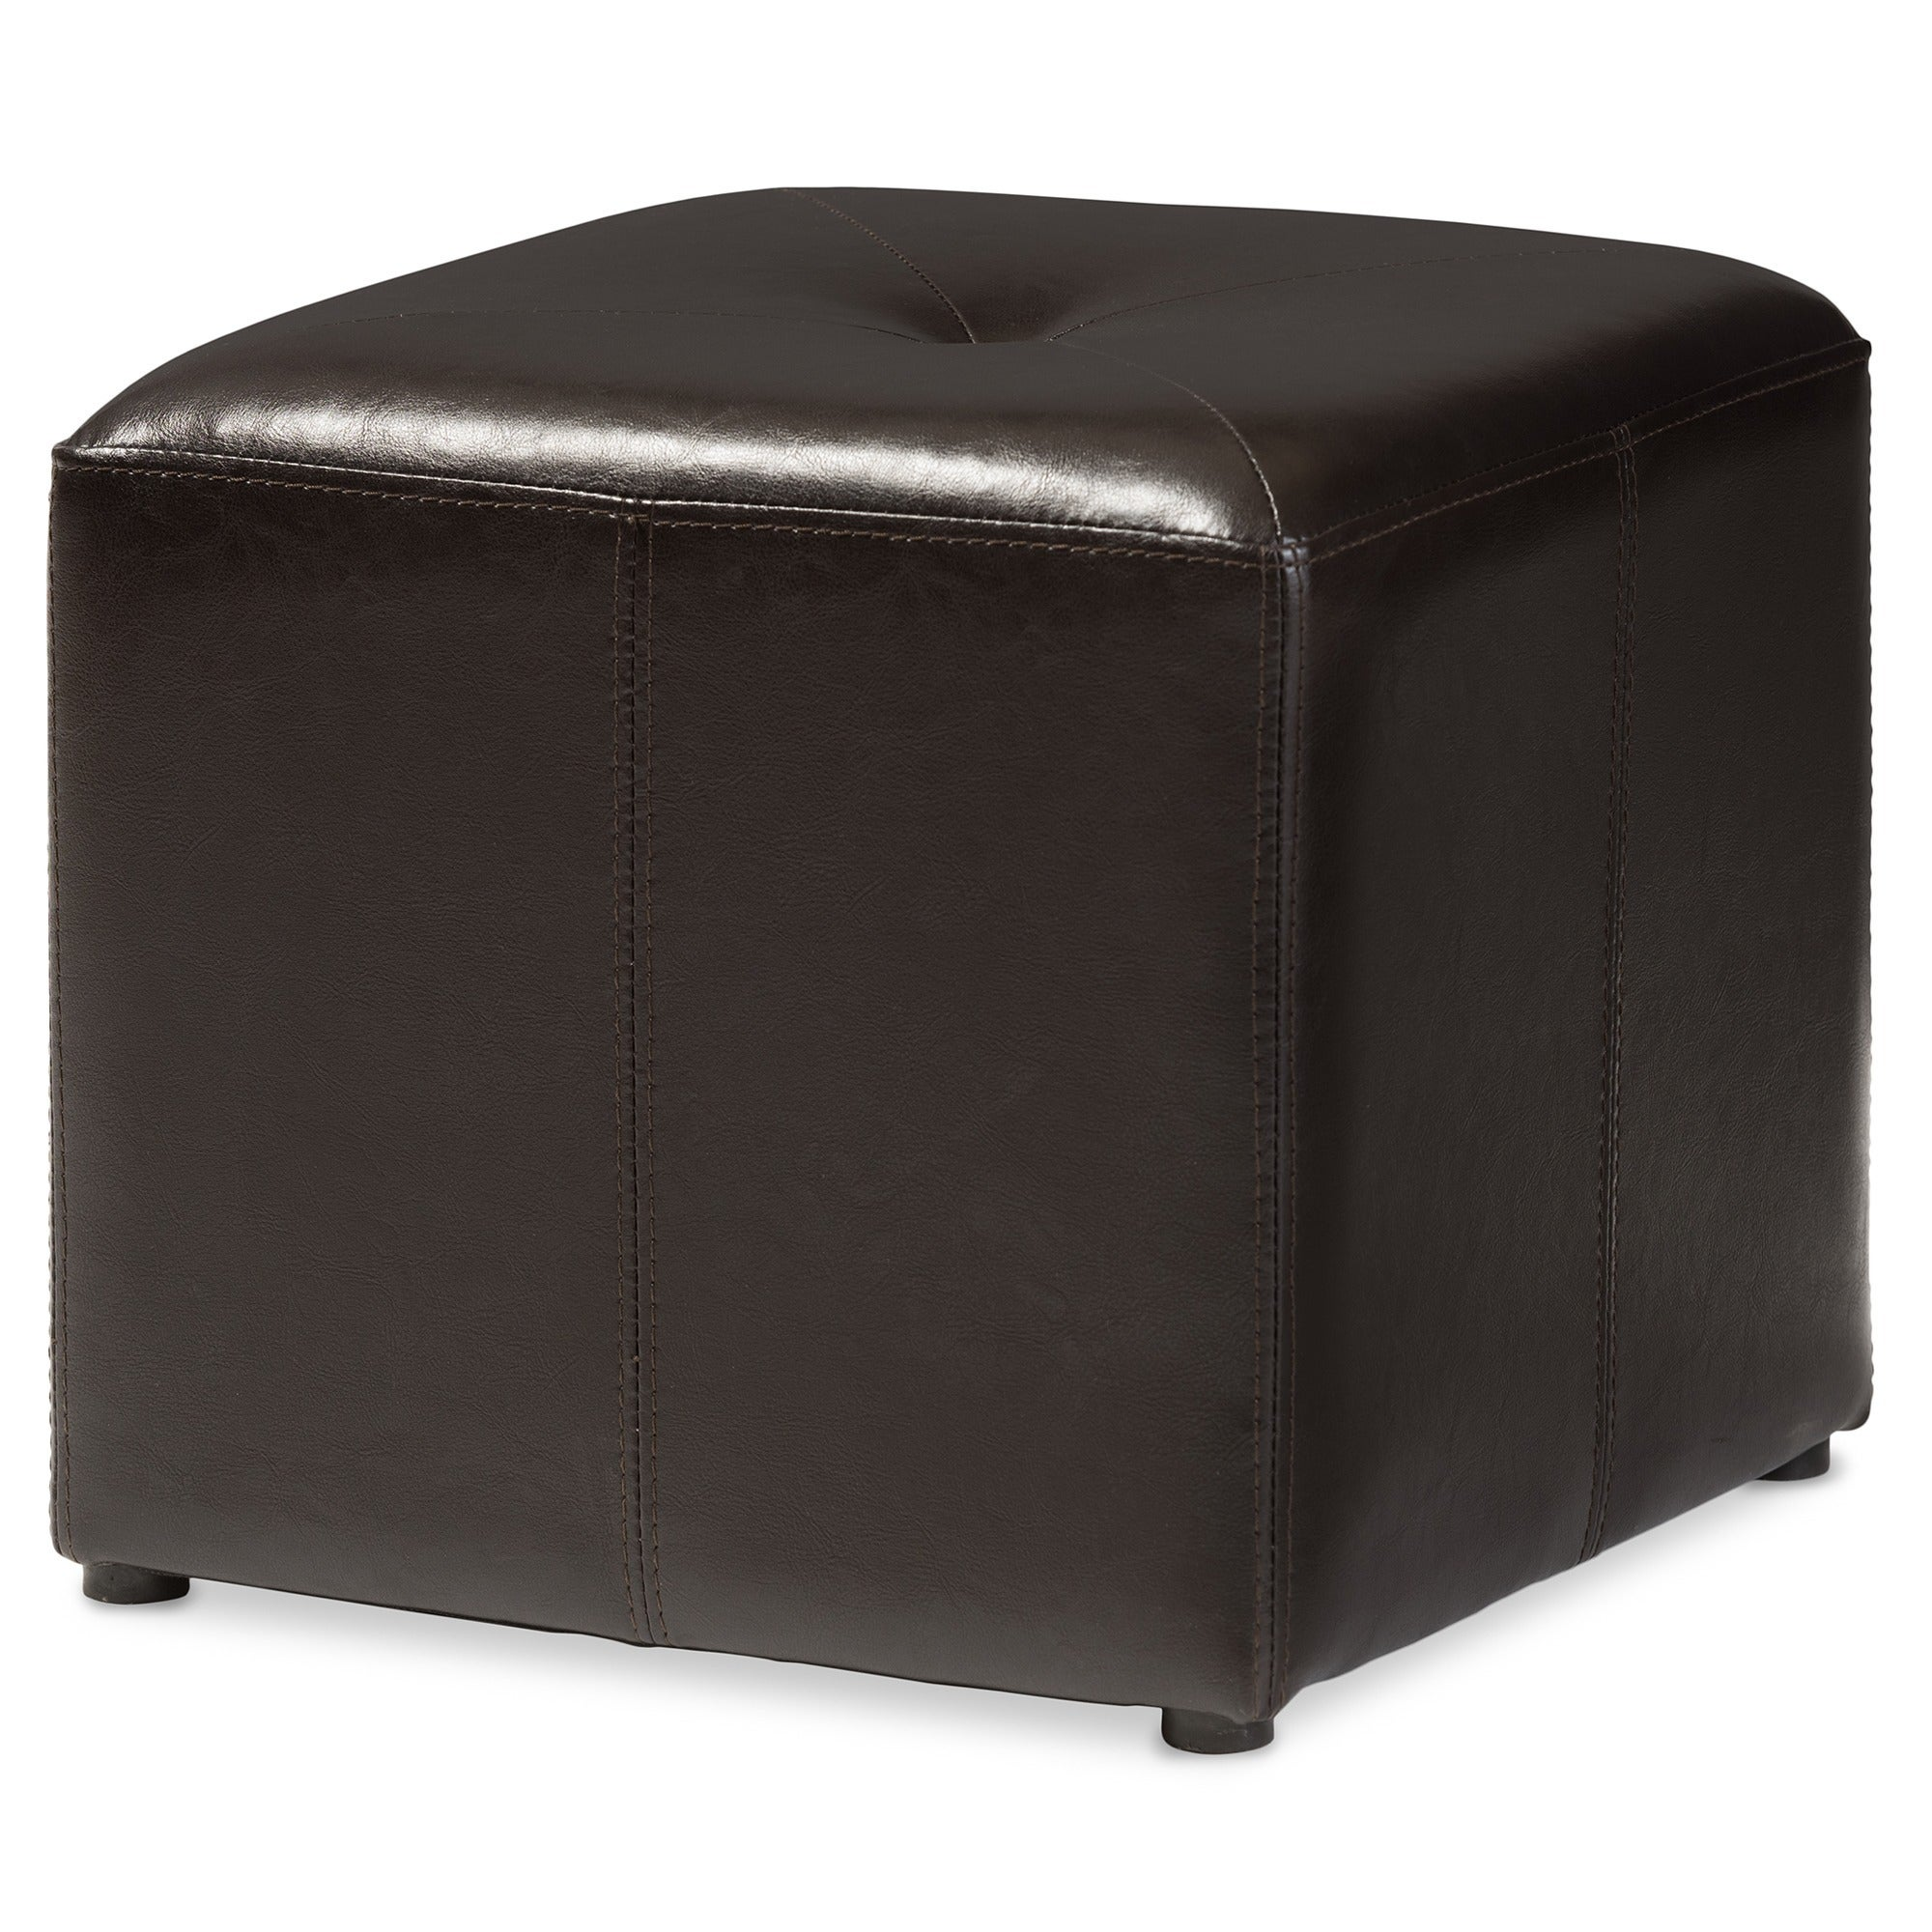 Marvelous Dark Brown Bonded Leather Cube Ottoman Caraccident5 Cool Chair Designs And Ideas Caraccident5Info